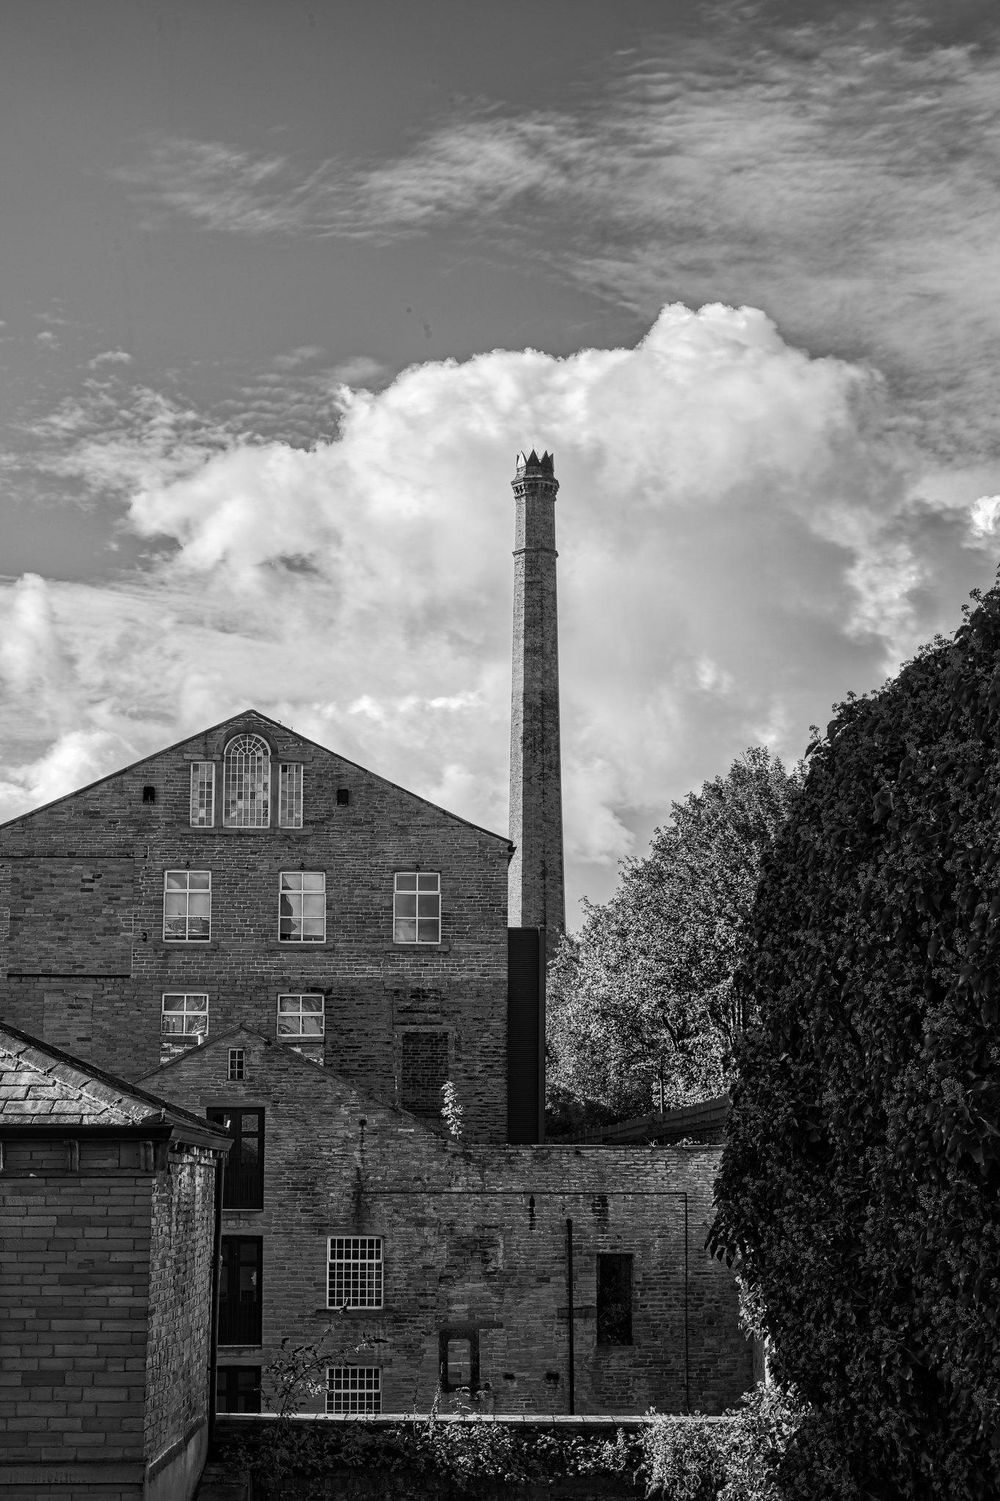 dean clough mill - image 4 - student project